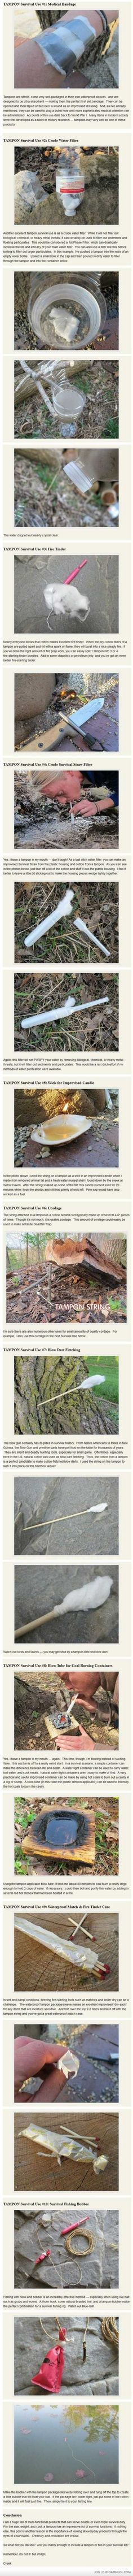 Survival uses for tampons-totally legit, I'm definitely making sure some come along for camping and hiking every trip Apocalypse Survival, Survival Mode, Homestead Survival, Wilderness Survival, Survival Tools, Camping Survival, Outdoor Survival, Survival Prepping, Outdoor Camping